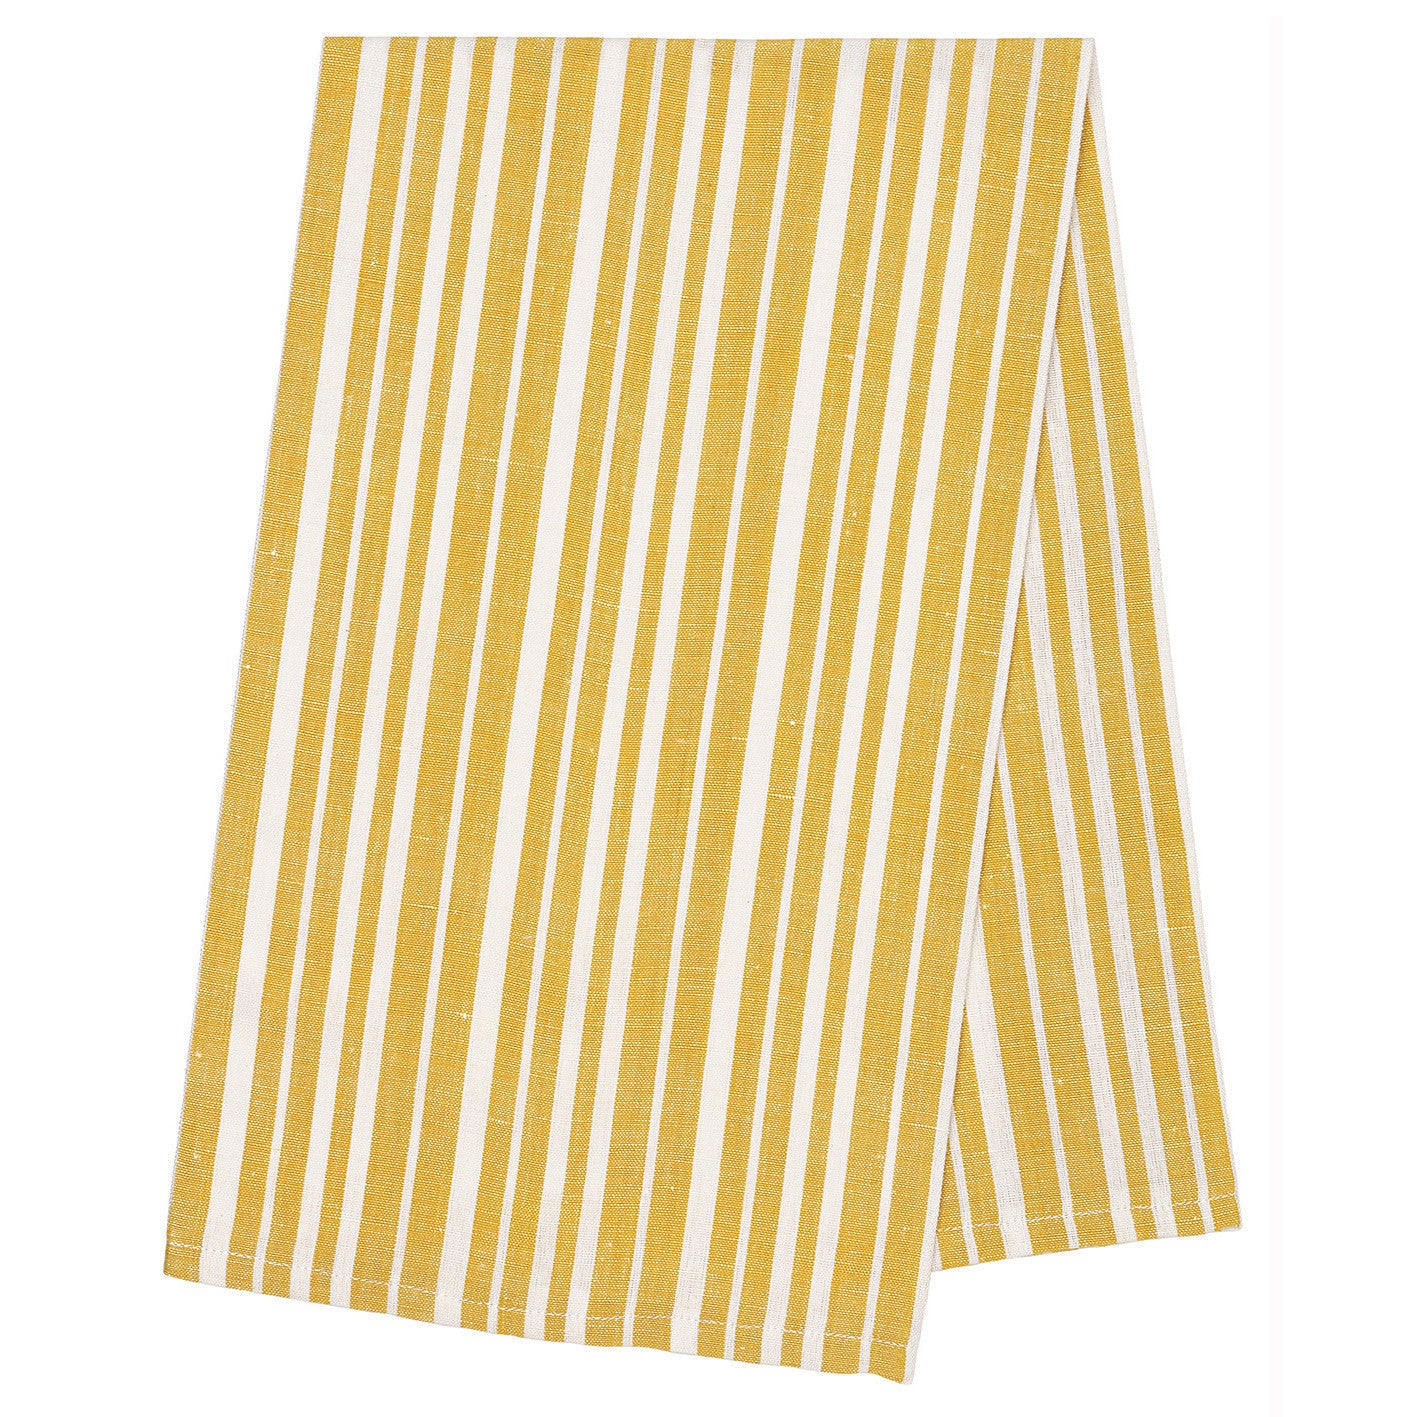 Patterned & Striped Linen Cotton Tea Towels in Yellow